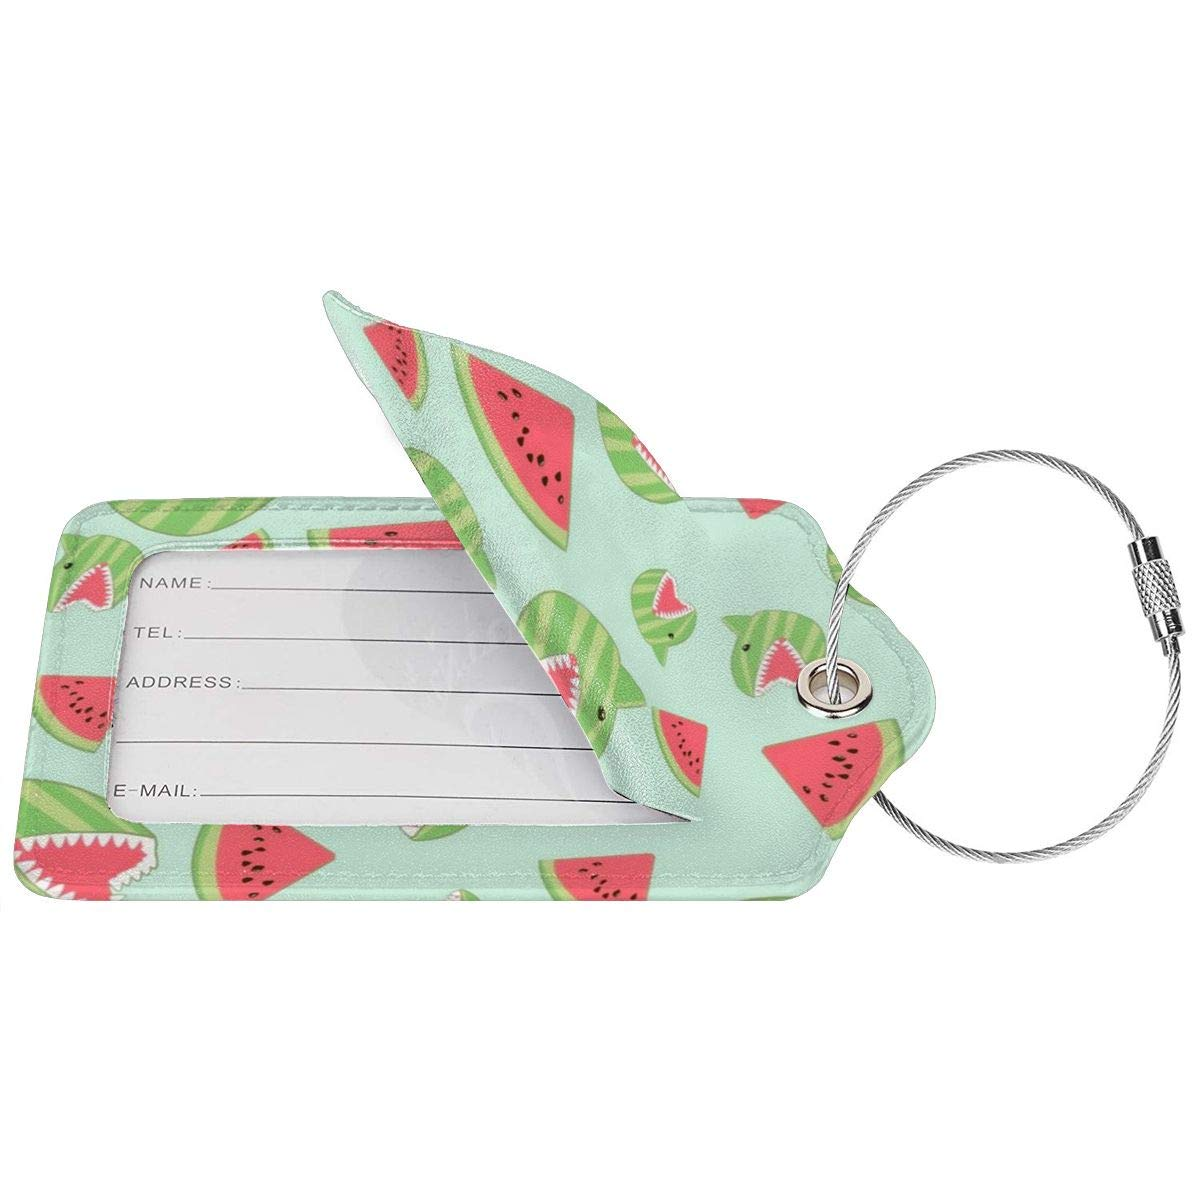 Shark Watermelon Funny Luggage Tag Label Travel Bag Label With Privacy Cover Luggage Tag Leather Personalized Suitcase Tag Travel Accessories